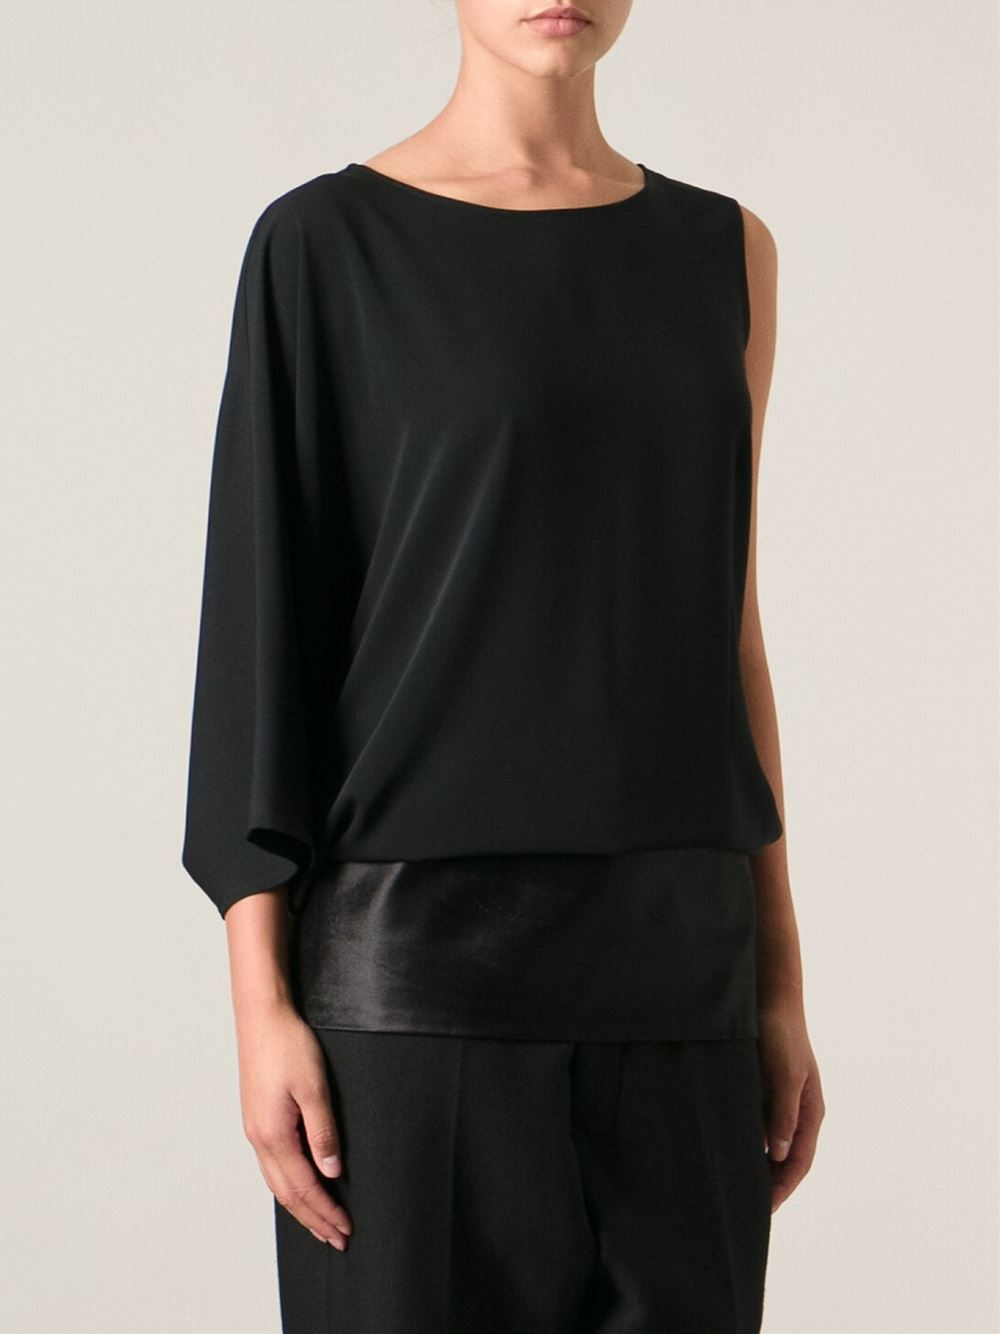 Mm6 by maison martin margiela one sleeve top in black lyst for Mm6 maison margiela